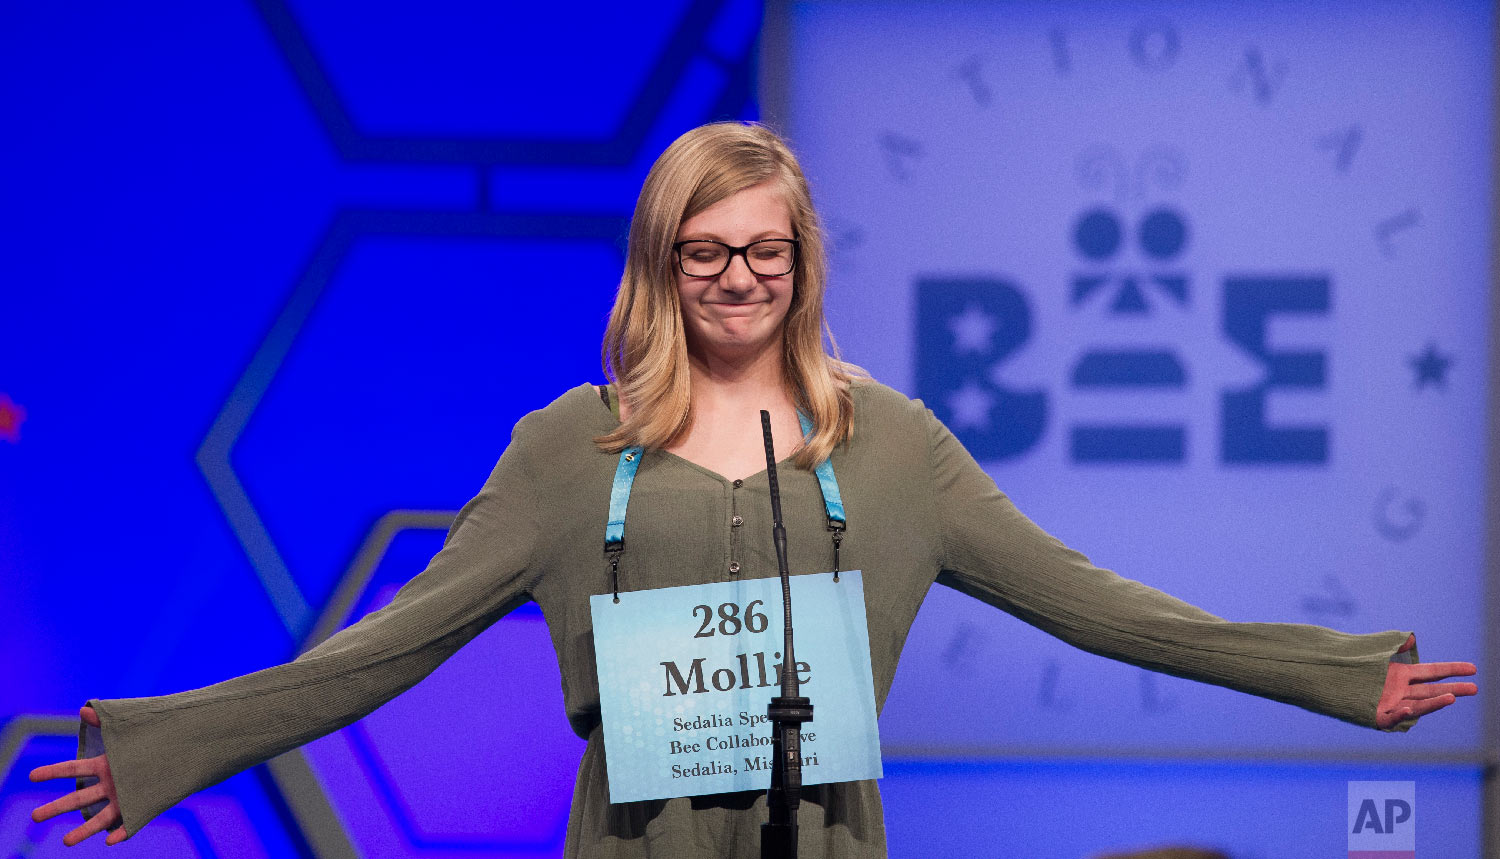 Mollie Miner, 11, from Sedalia, Mo., misspells her word during the second round of the Scripps National Spelling Bee in Oxon Hill, Md., Tuesday, May 29, 2018. (AP Photo/Cliff Owen)